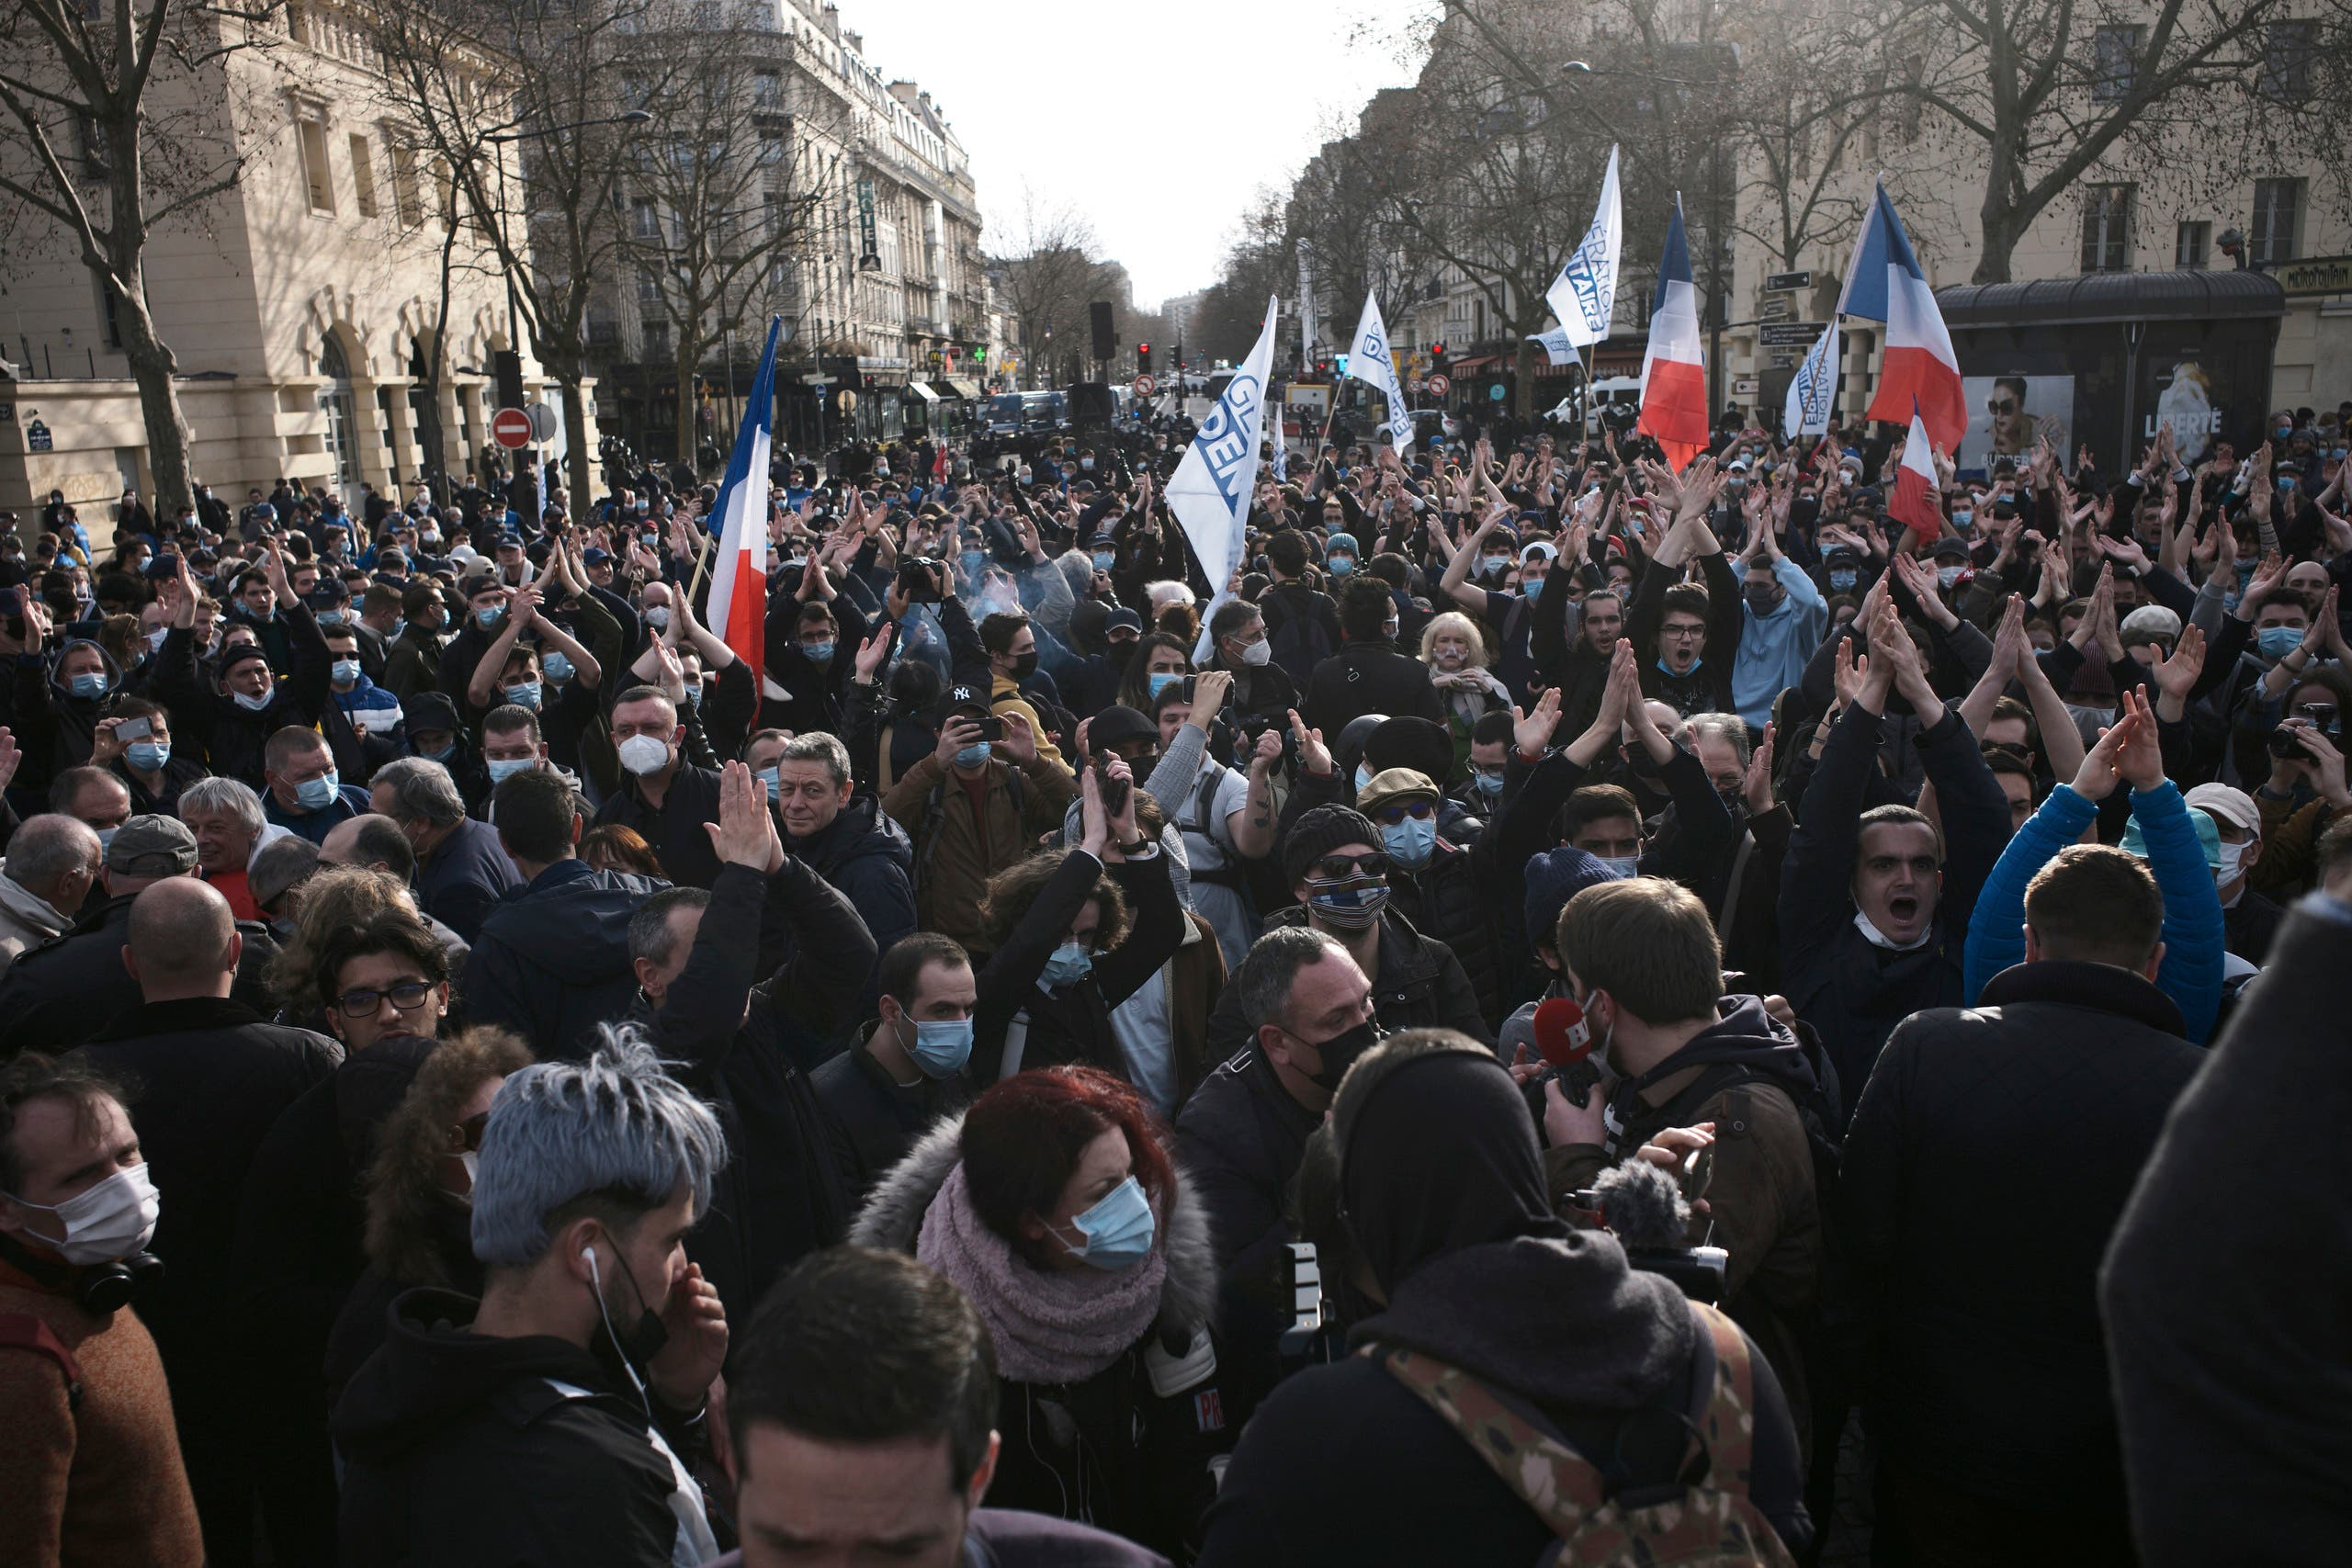 Supporters of the movement Generation Identity gather during a demonstration Saturday, February 20, 2021 in Paris. (AP)